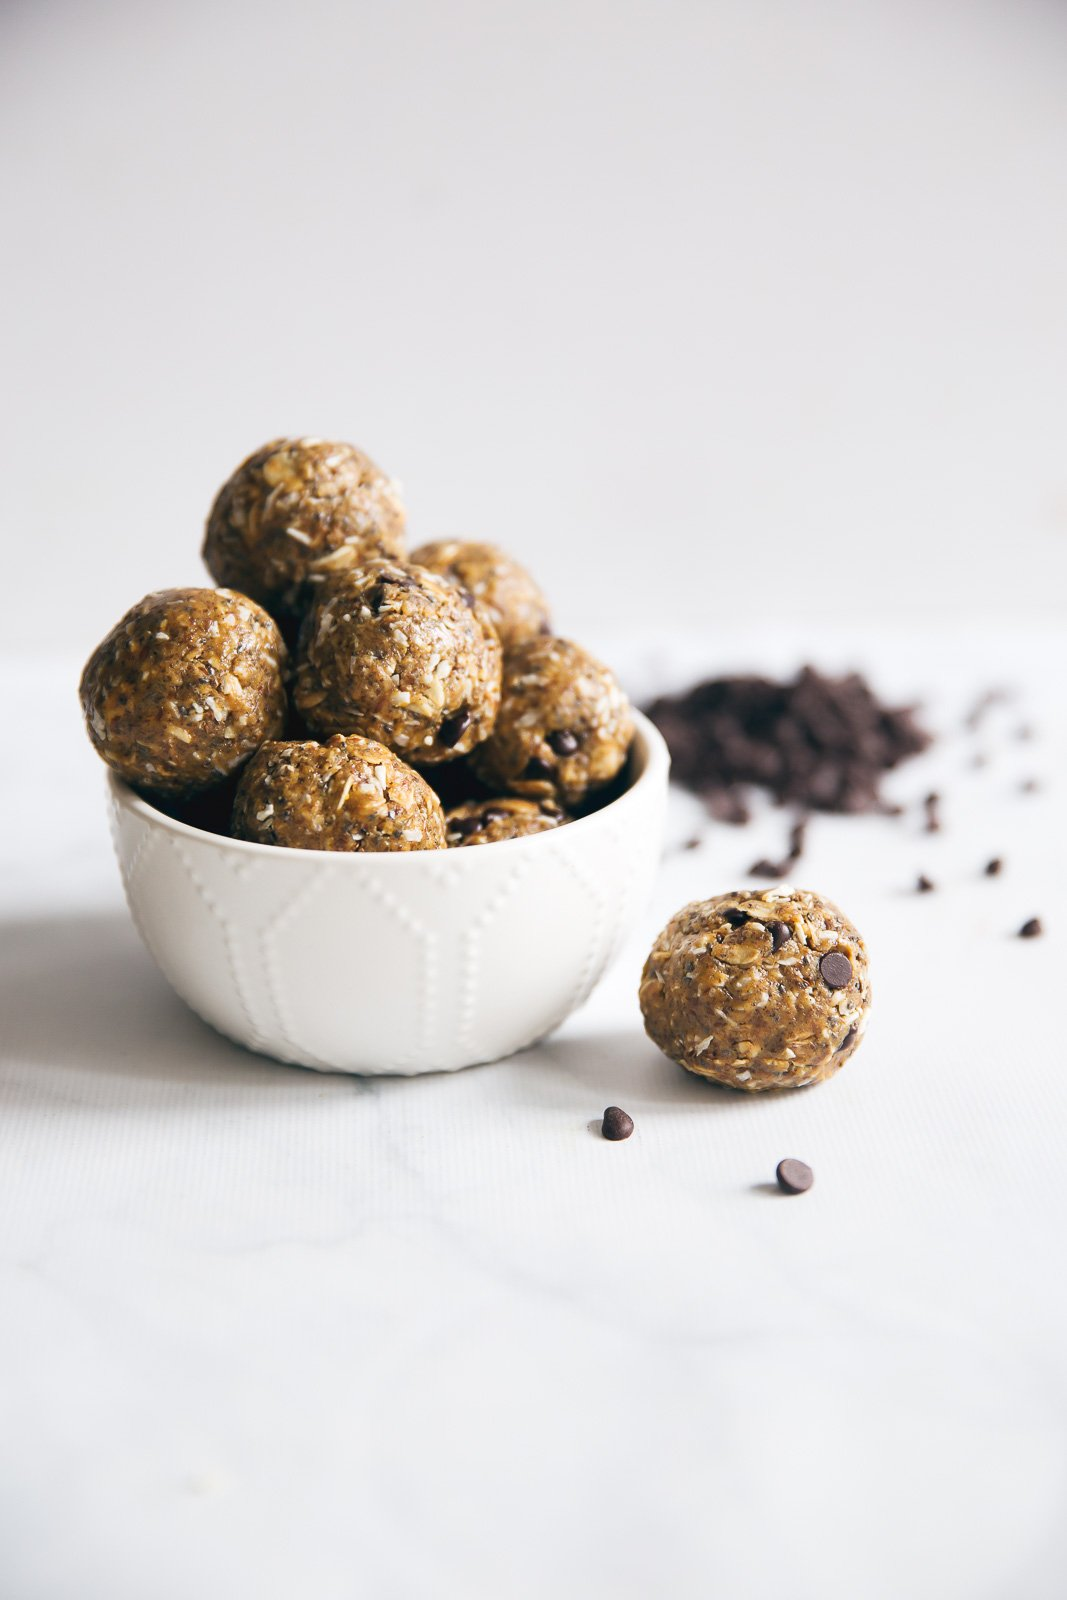 Chocolate chip granola balls in a small white bowl